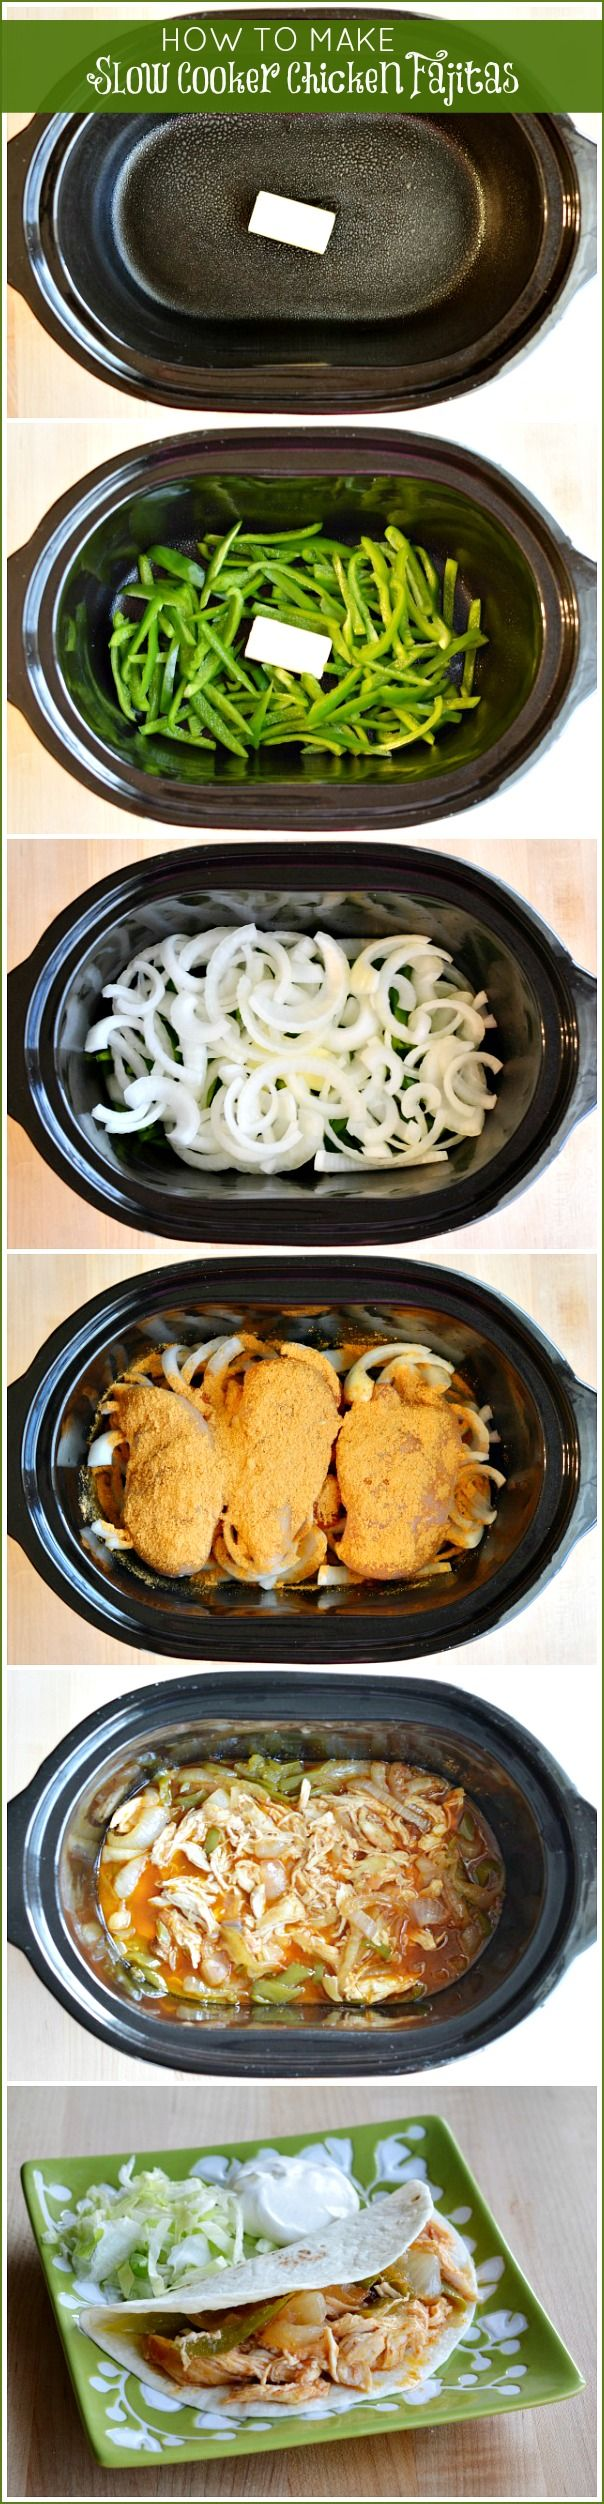 How to Make Slow Cooker Chicken Fajitas